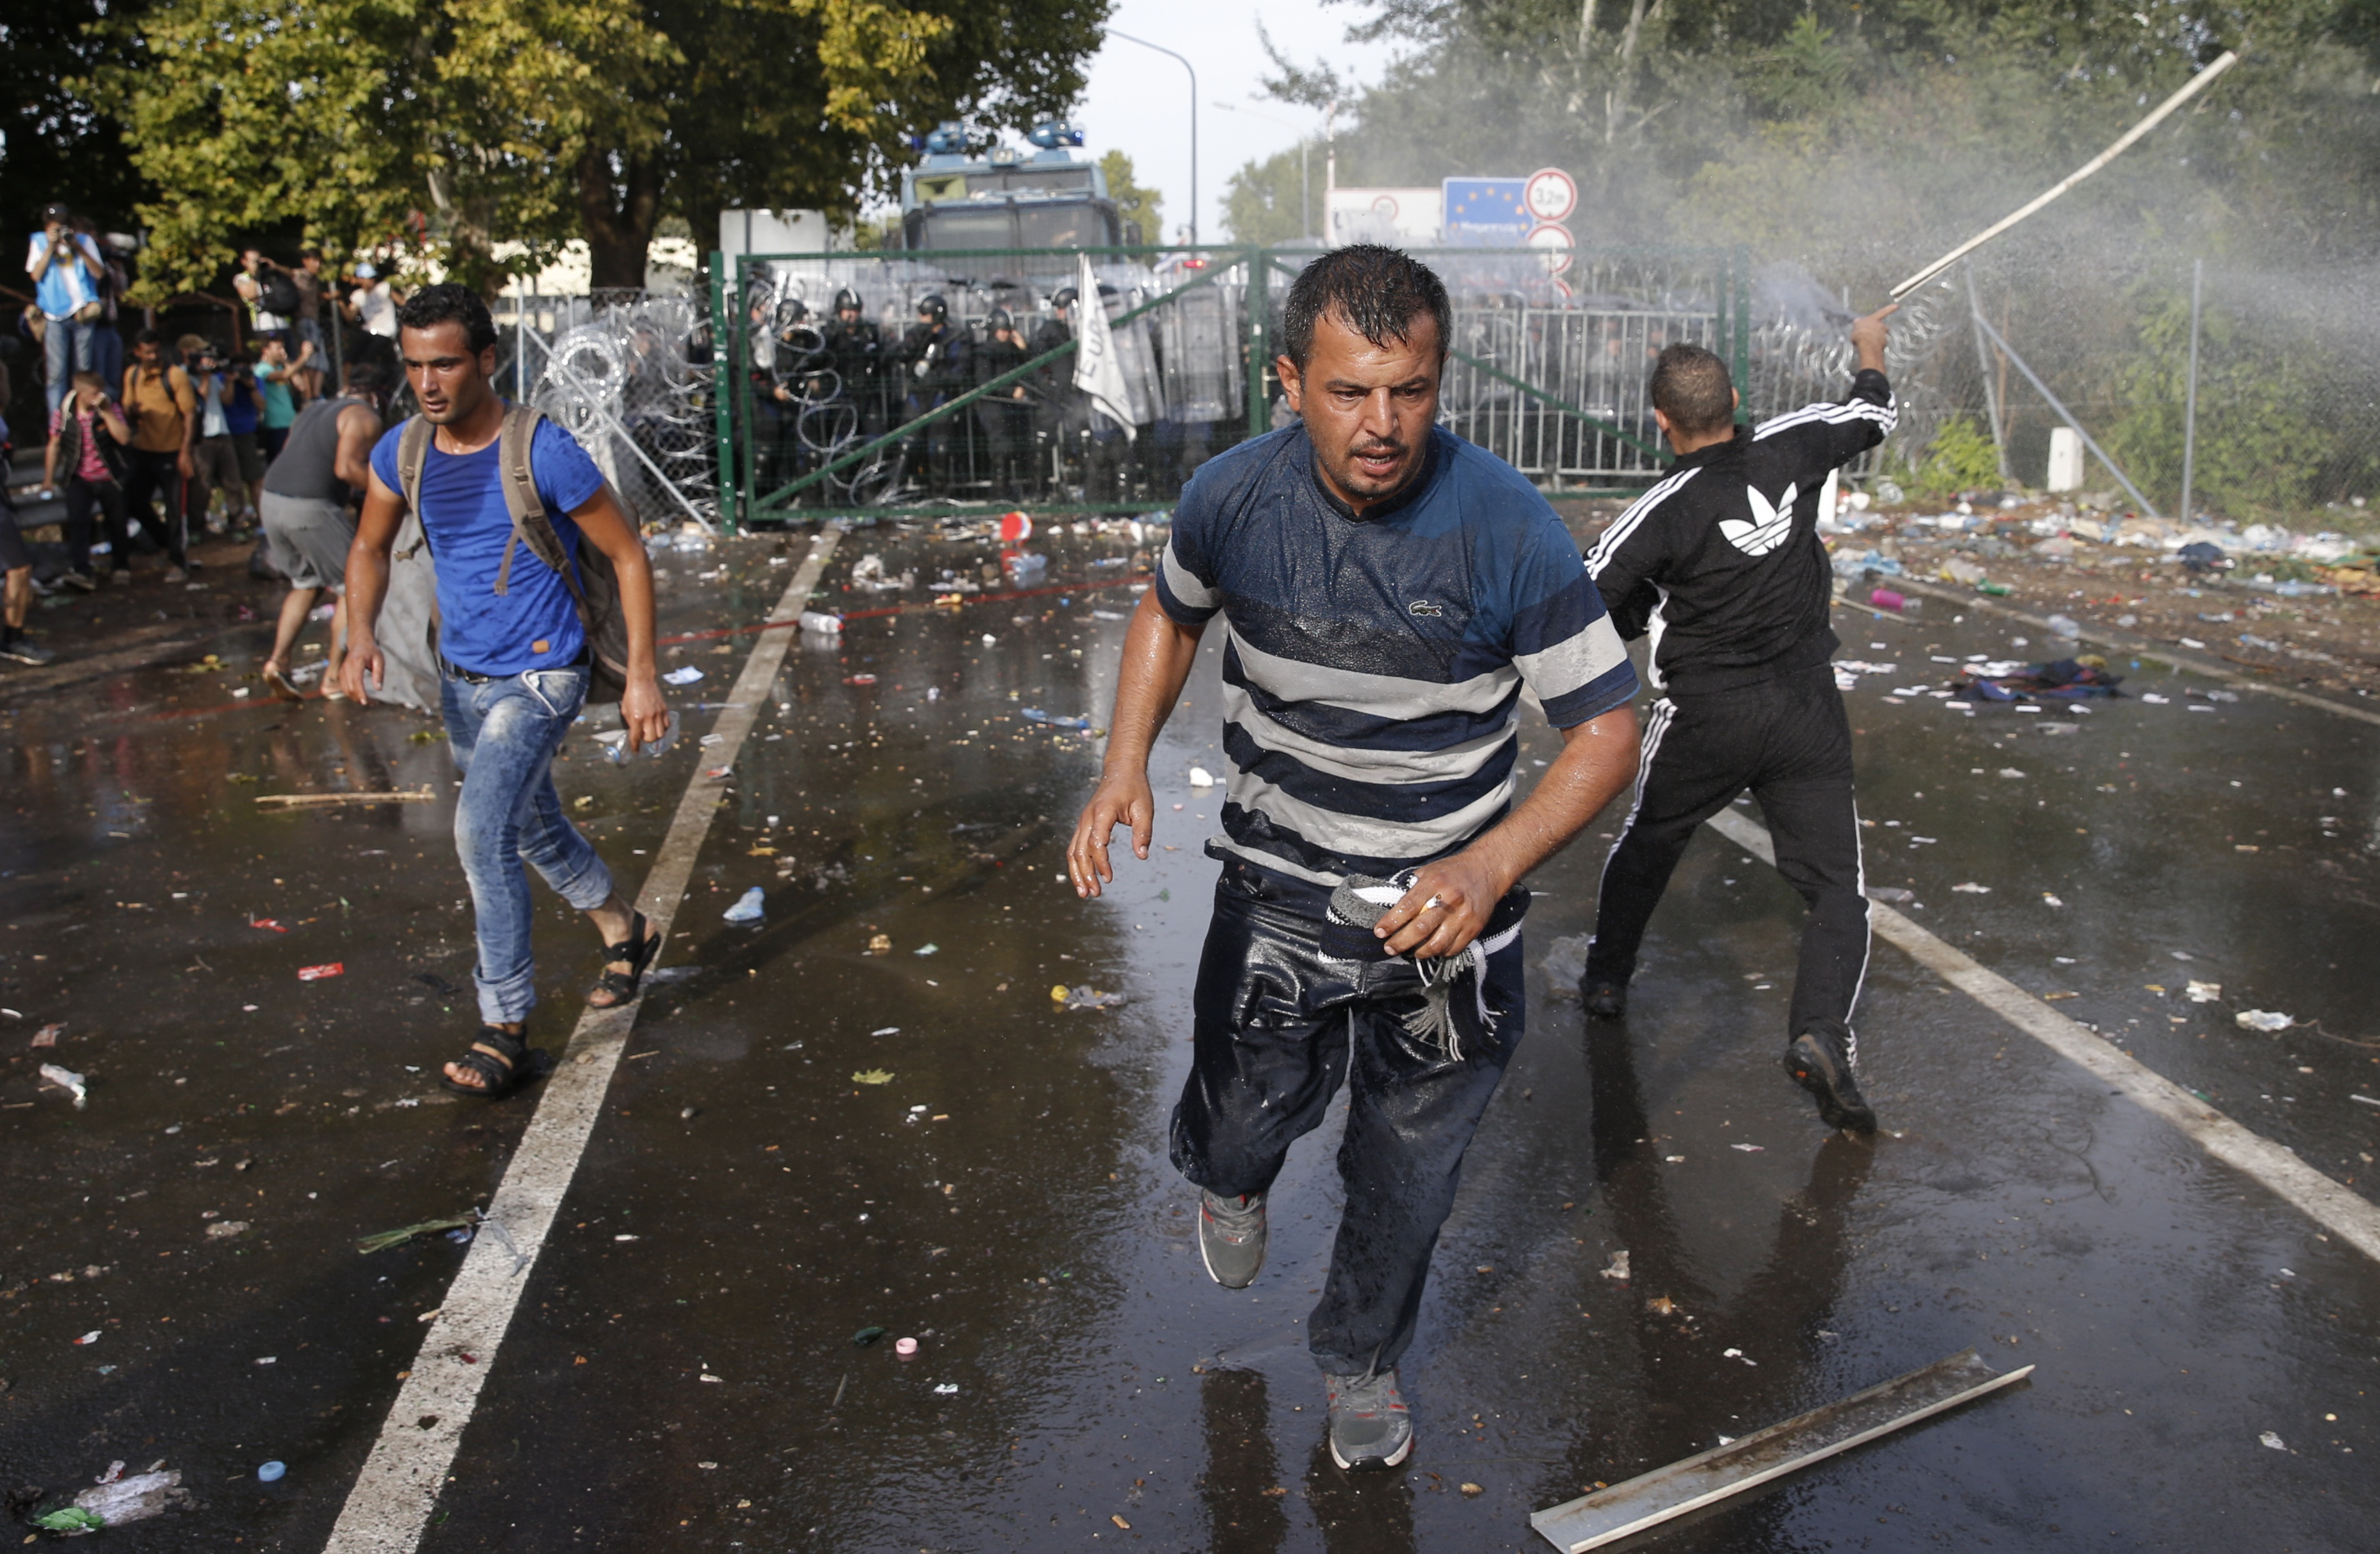 Migrants run as Hungarian riot police fires tear gas and water cannon at the border crossing with Serbia in Roszke, Hungary, Sept. 16, 2015.